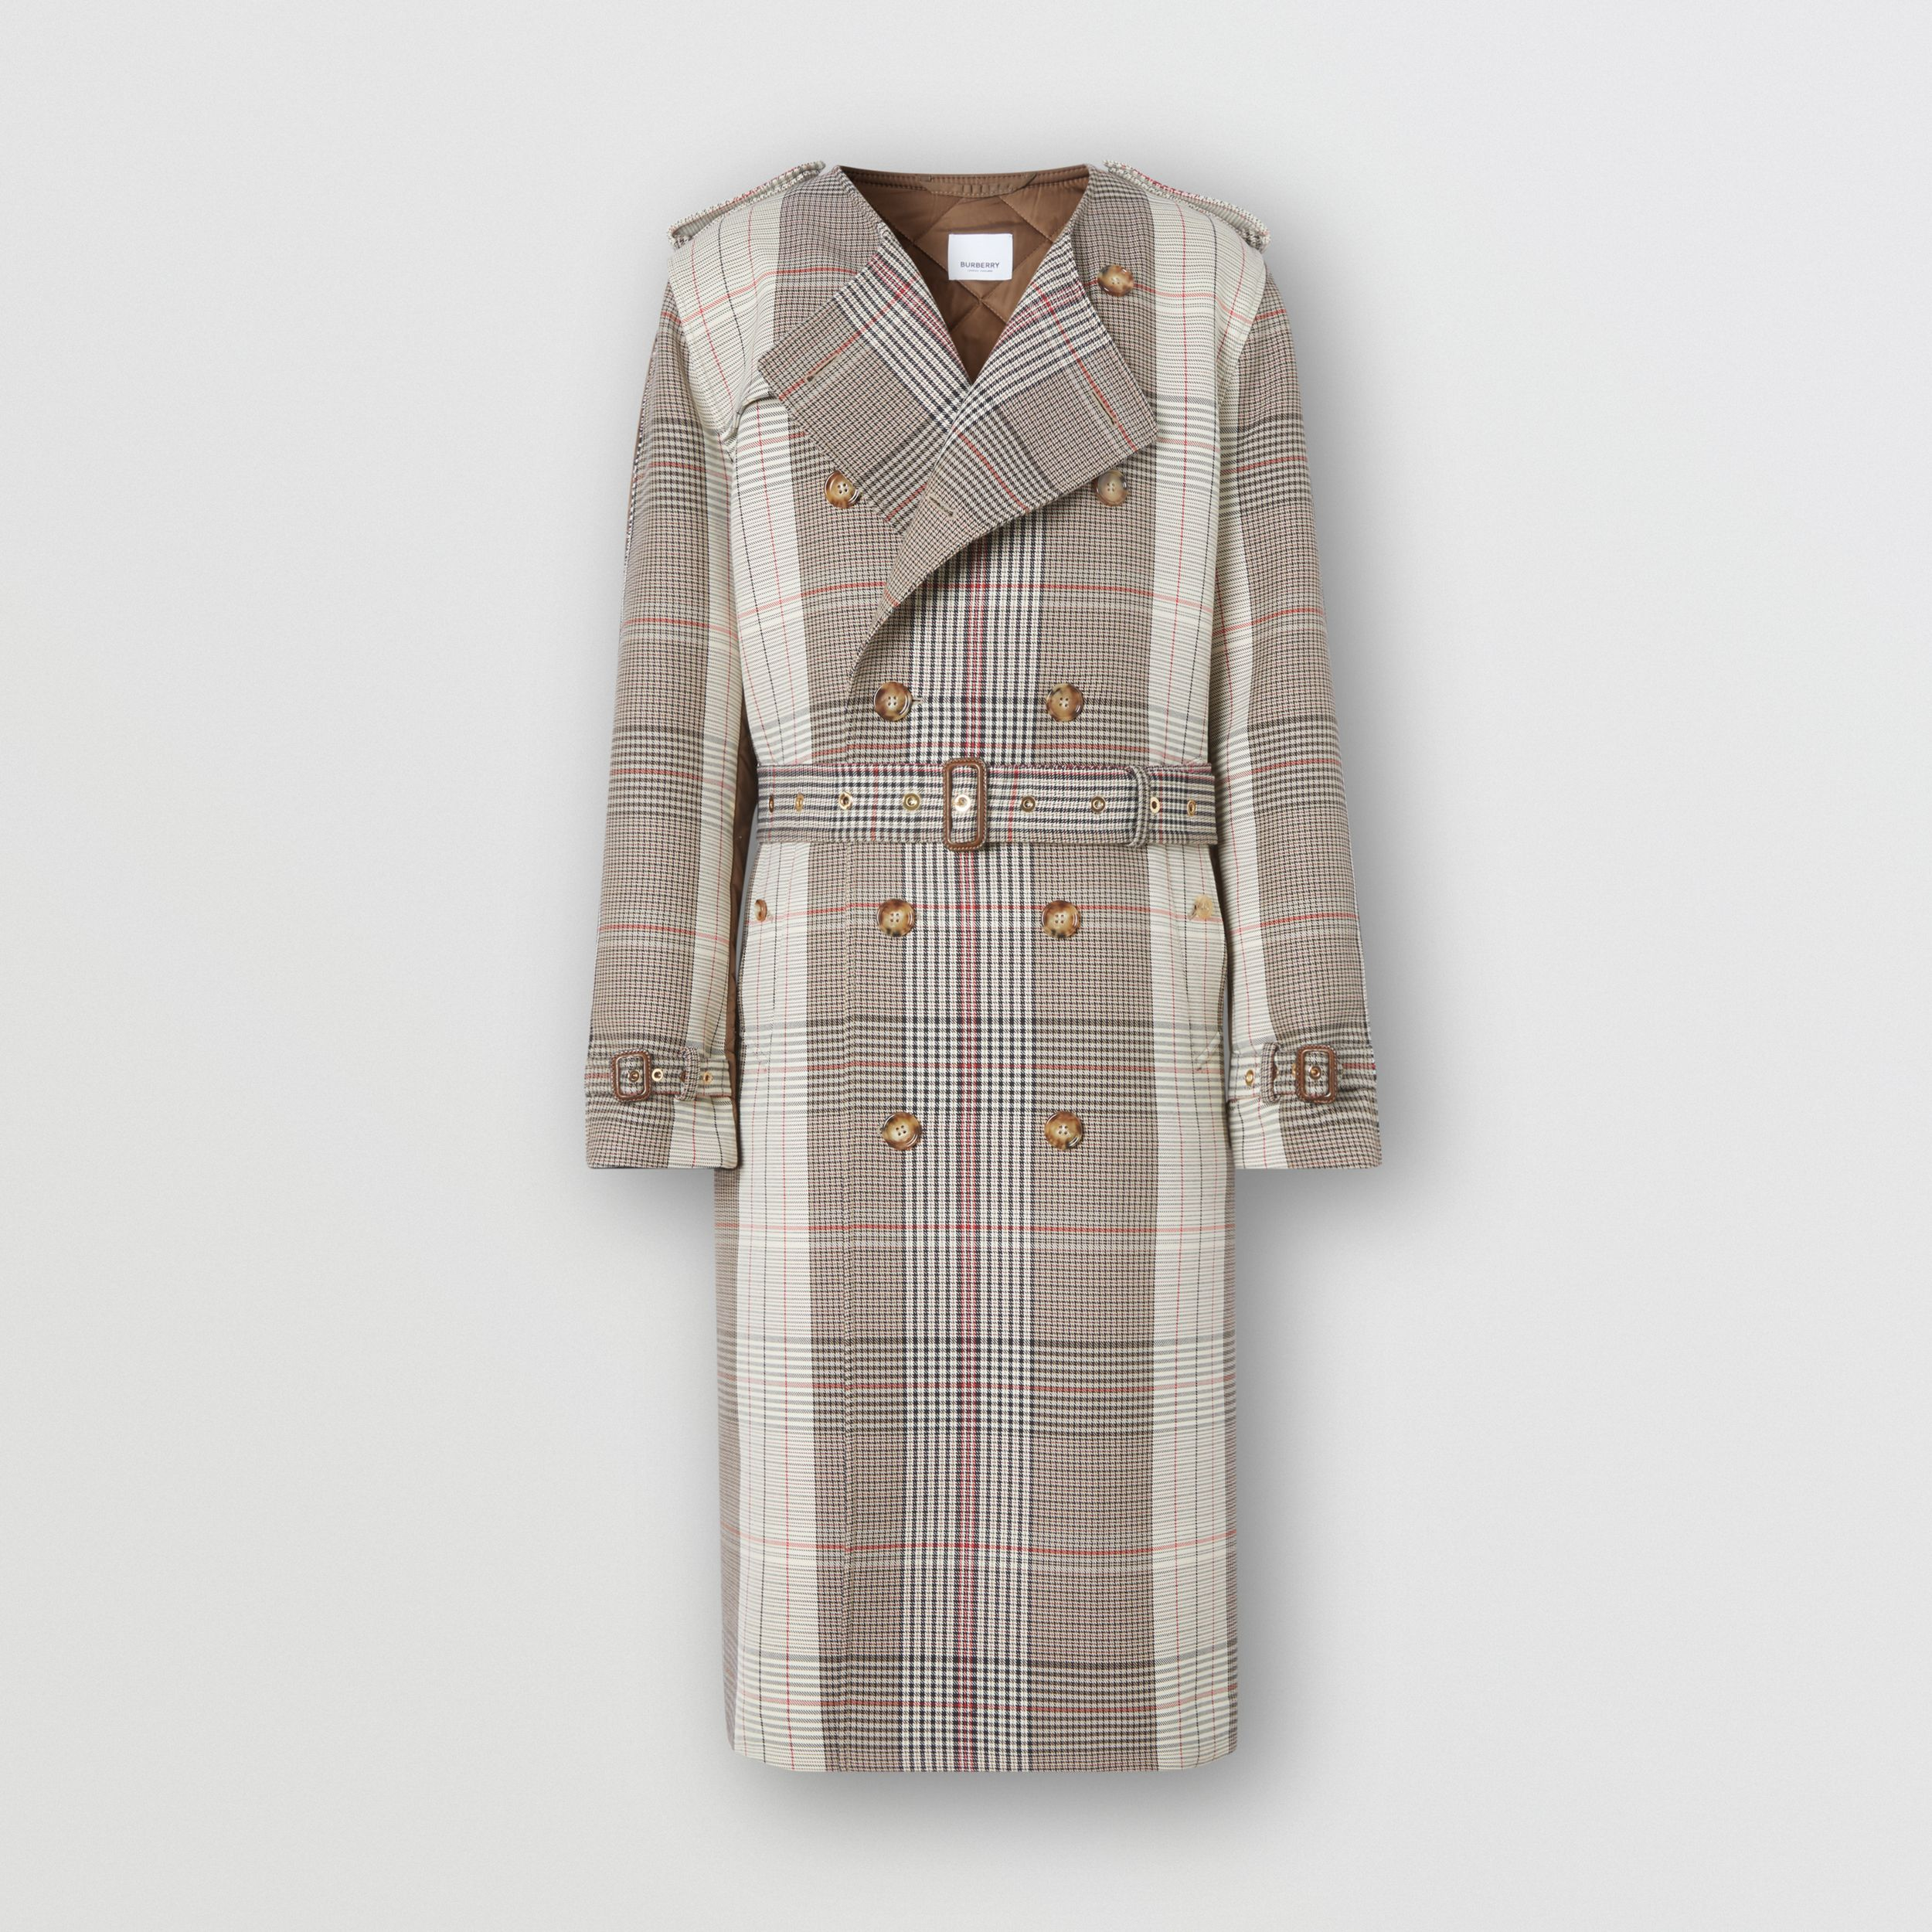 Quilted Panel Check Wool Cotton Trench Coat in Beige | Burberry United Kingdom - 4